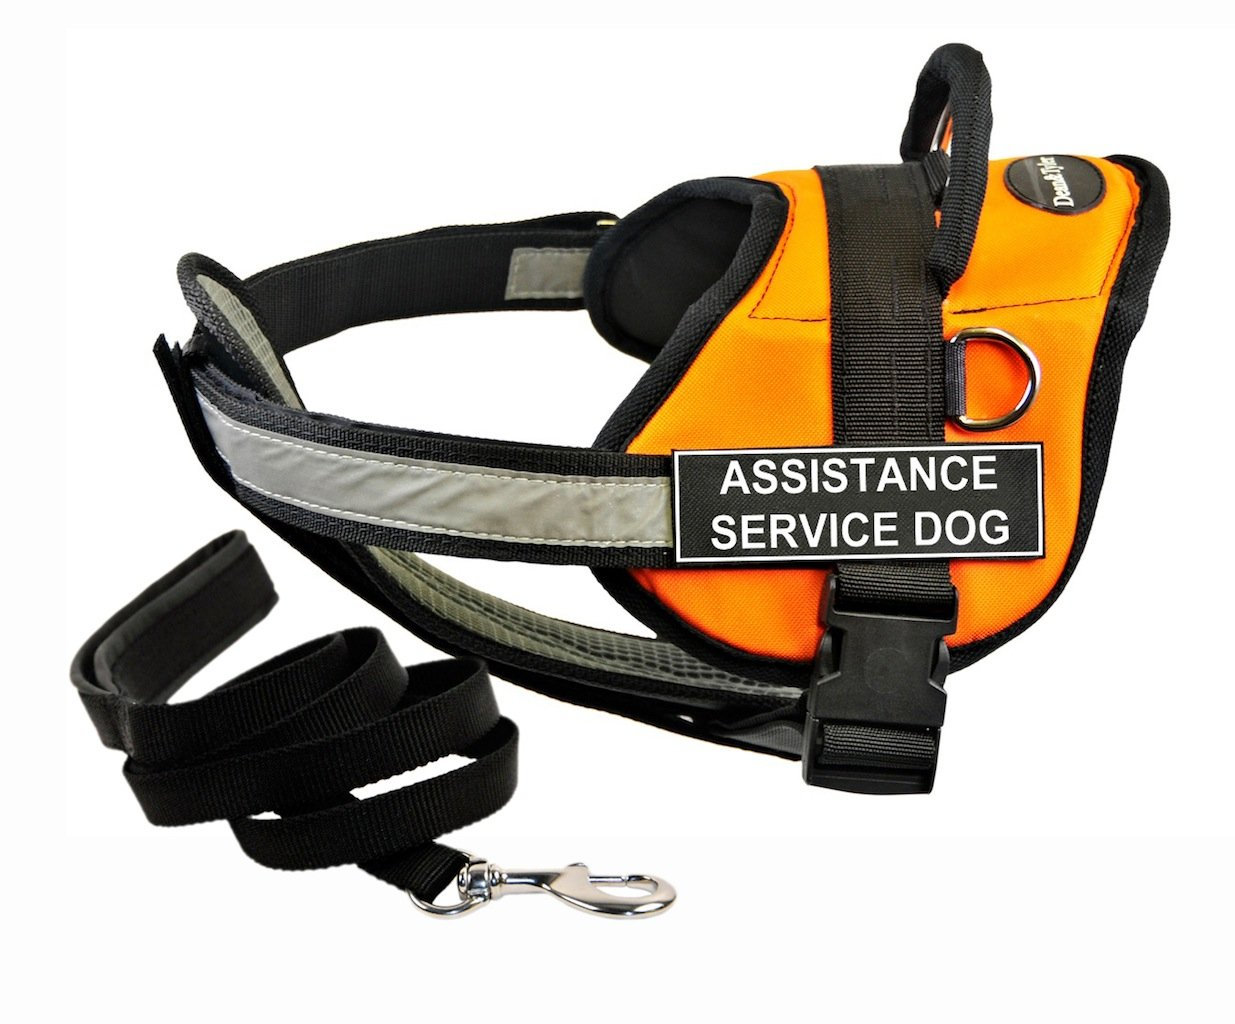 Dean & Tyler's DT Works orange Assistance Service Dog  Harness with Chest Padding, X-Small, and Black 6 ft Padded Puppy Leash.